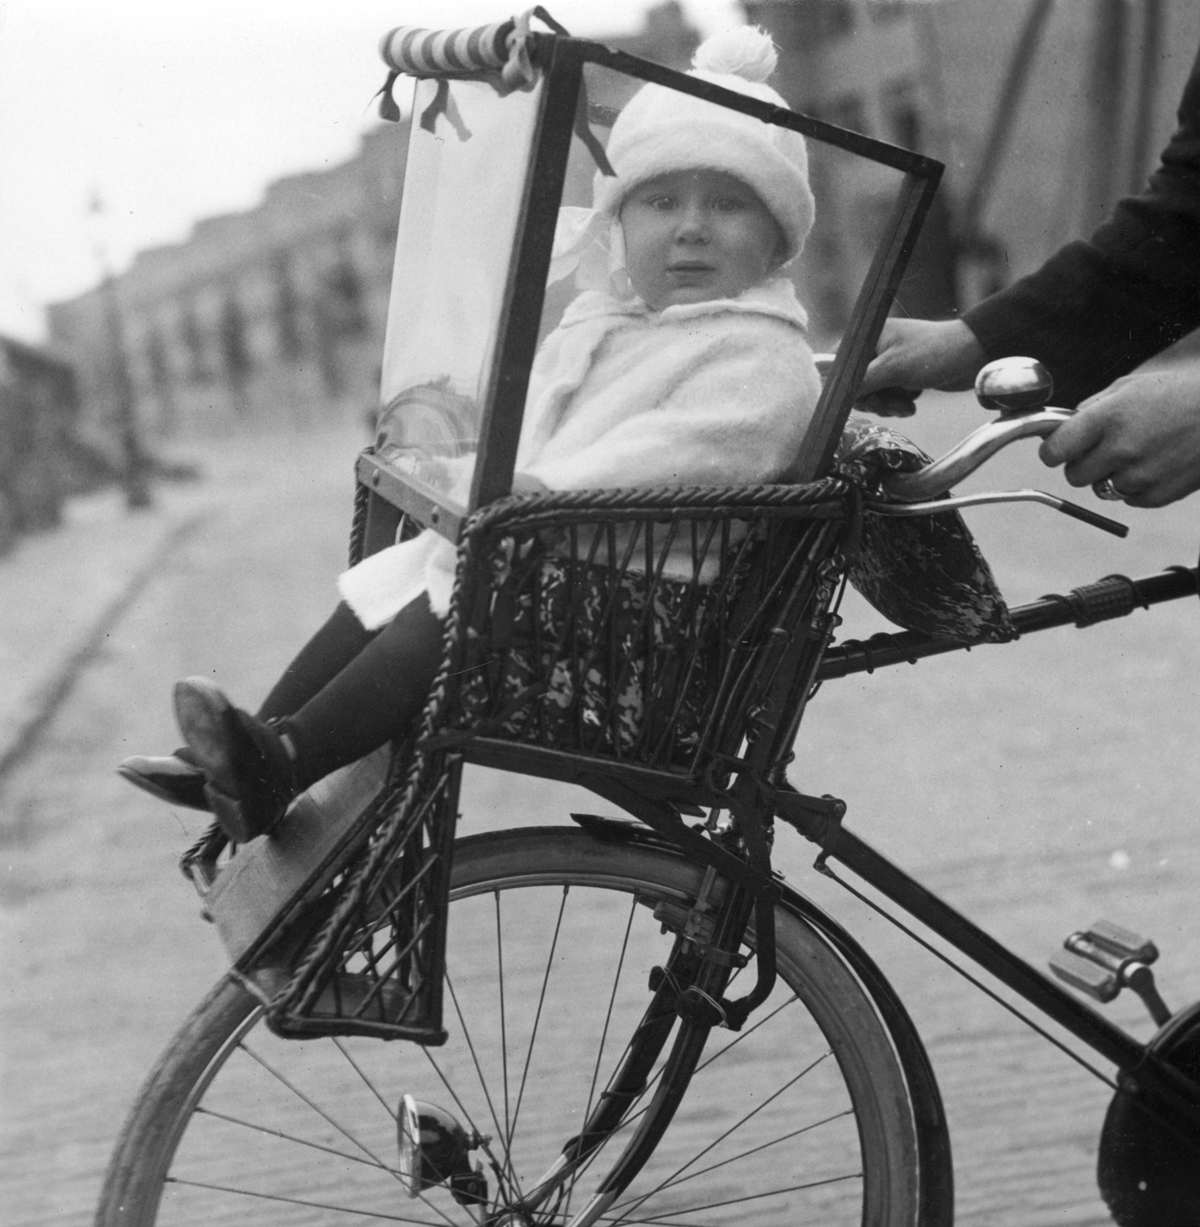 Child seat in front of the bike, Amsterdam, Netherlands, 1925.jpg